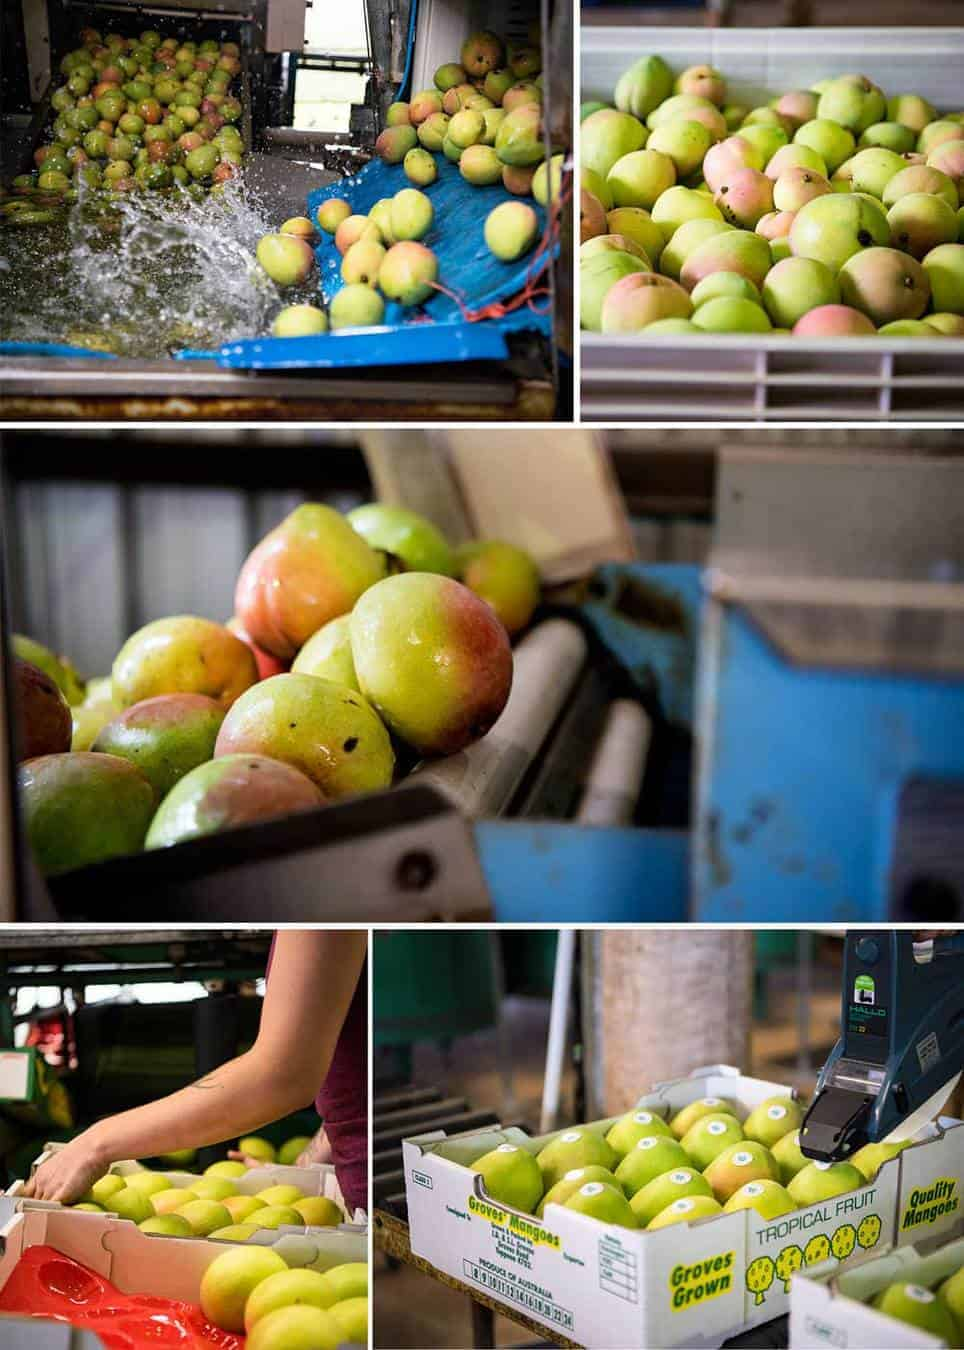 Cleaning and boxing of mangoes - on Groves Mango Farm, Queensland Australia